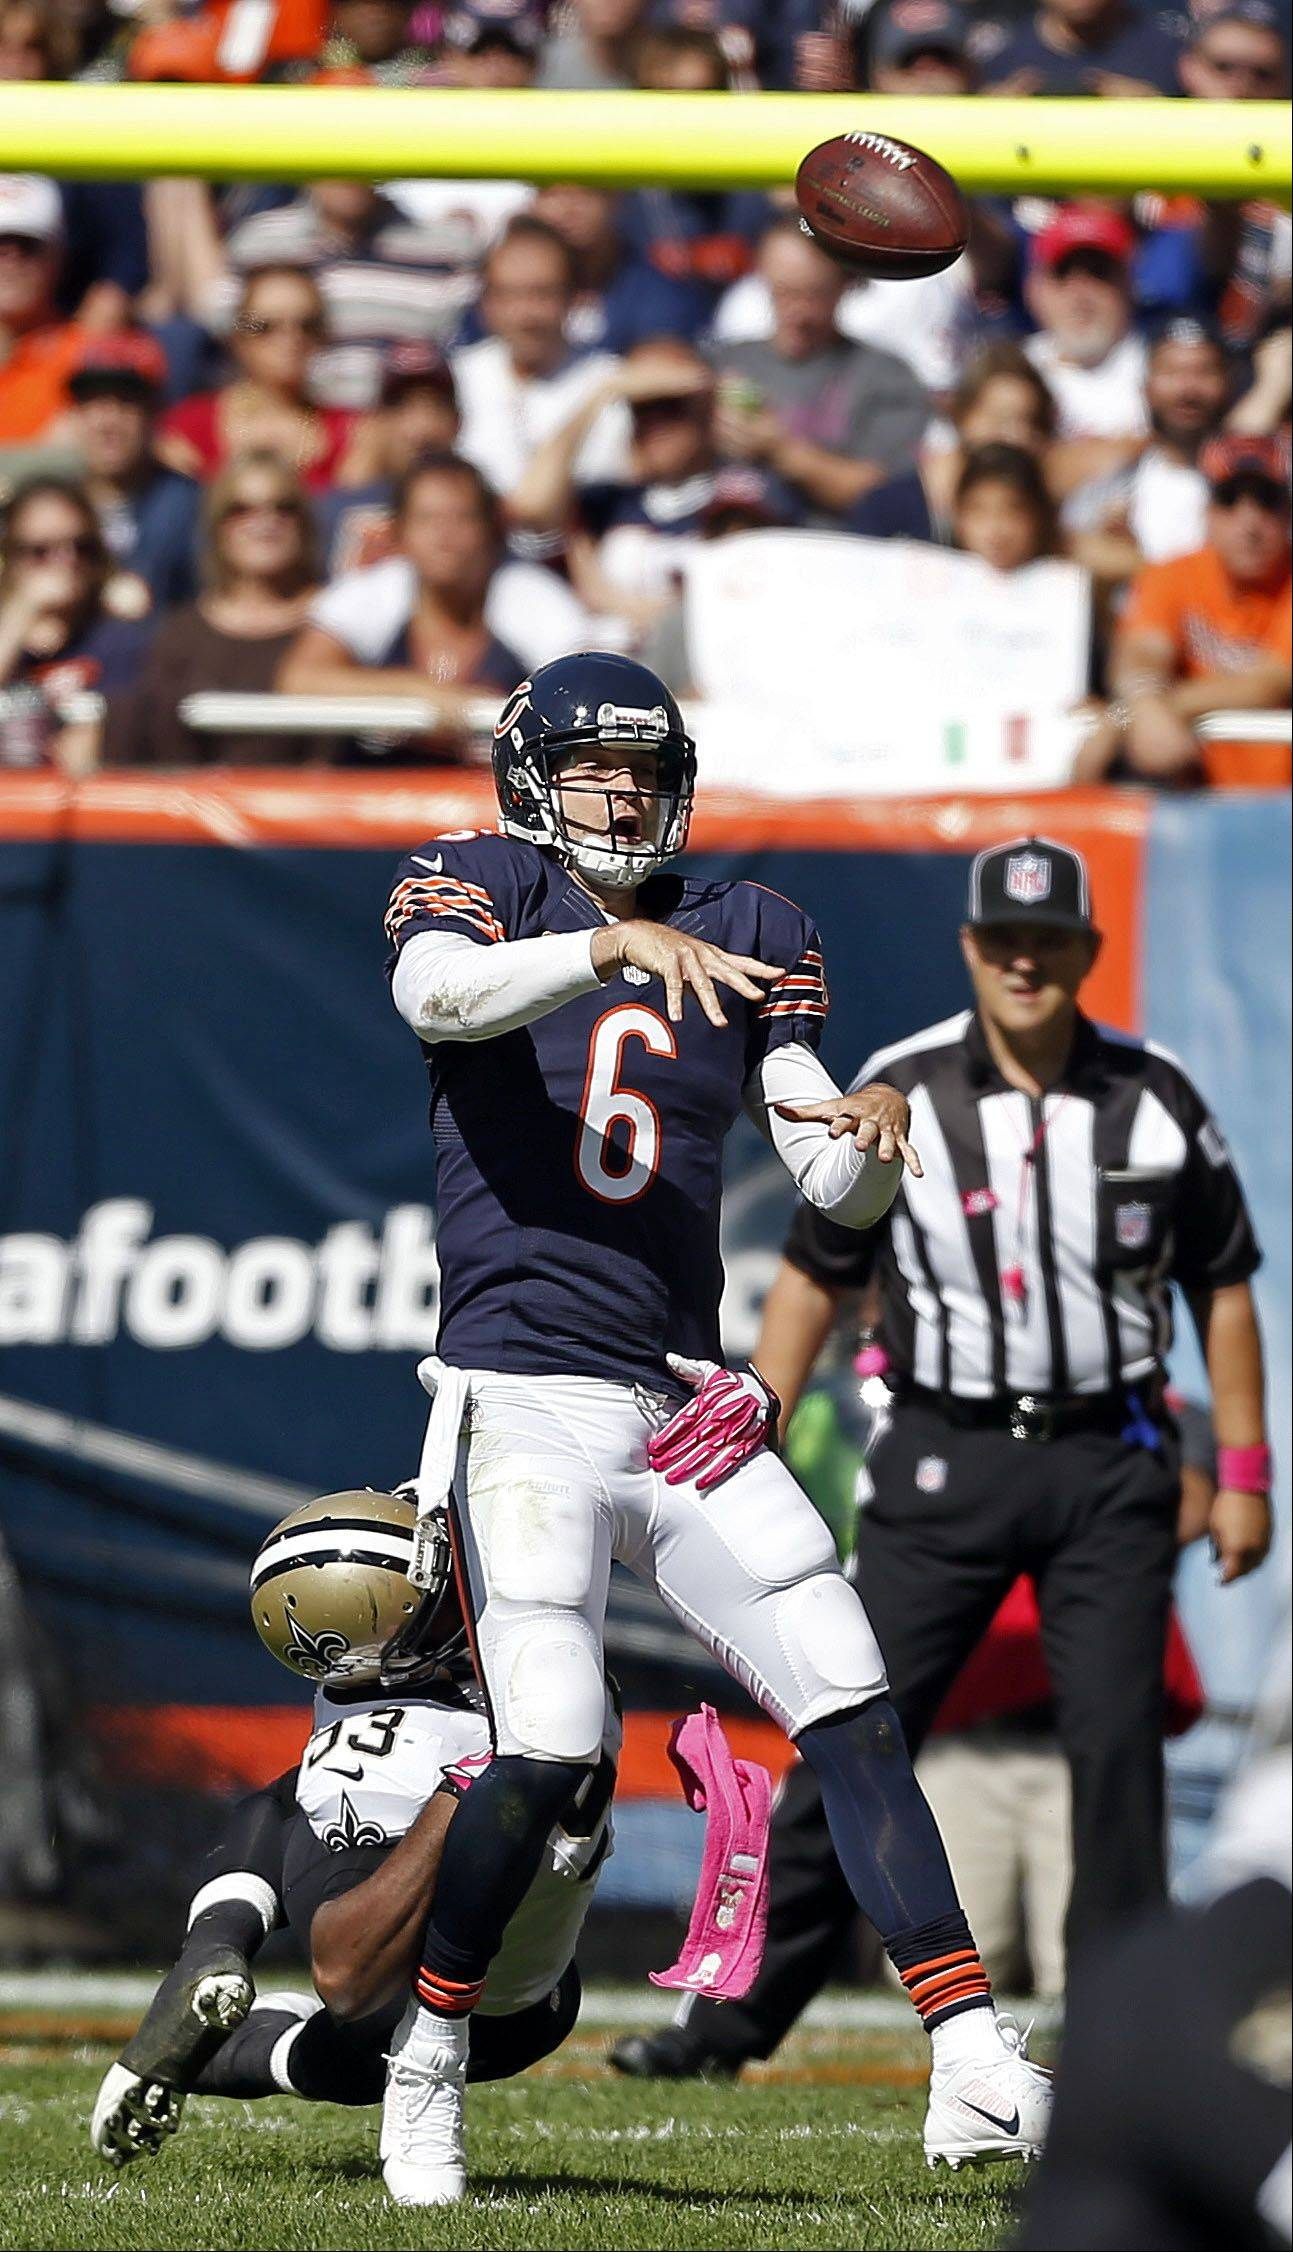 Chicago Bears quarterback Jay Cutler gets rid of the ball.